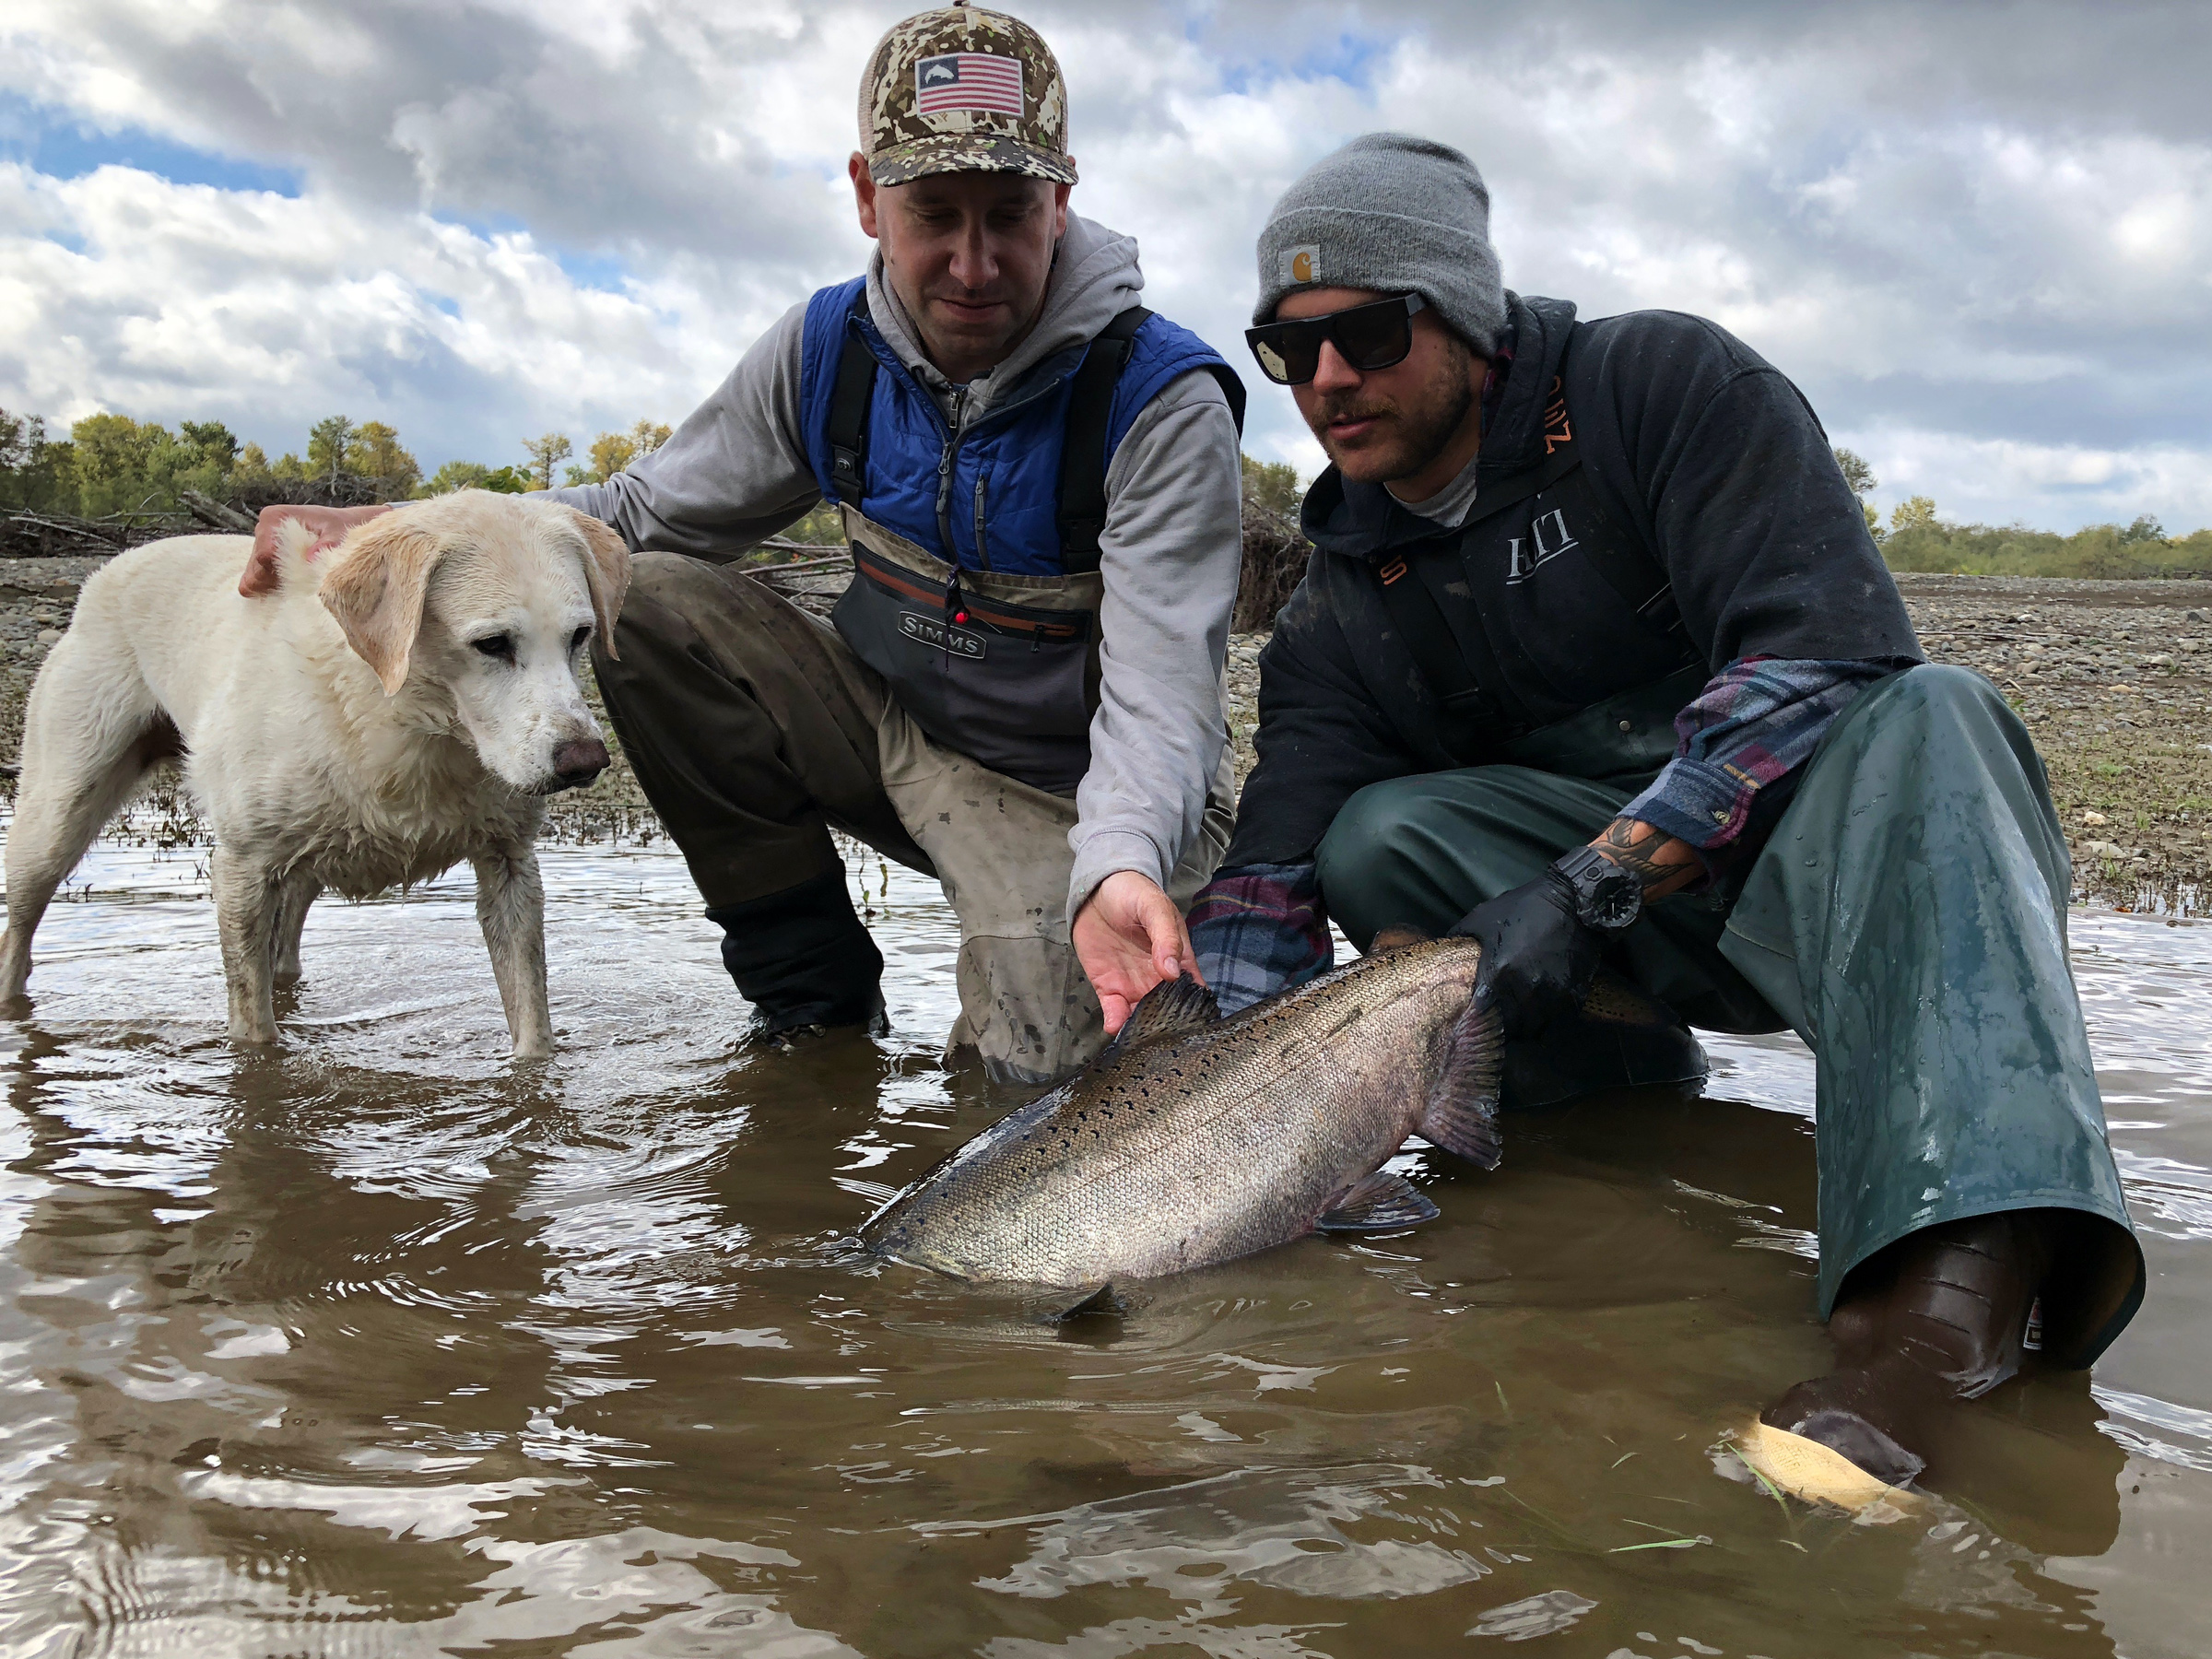 Me, Mitch and Miles admire a prized Humptulips River Chinook Salmon.